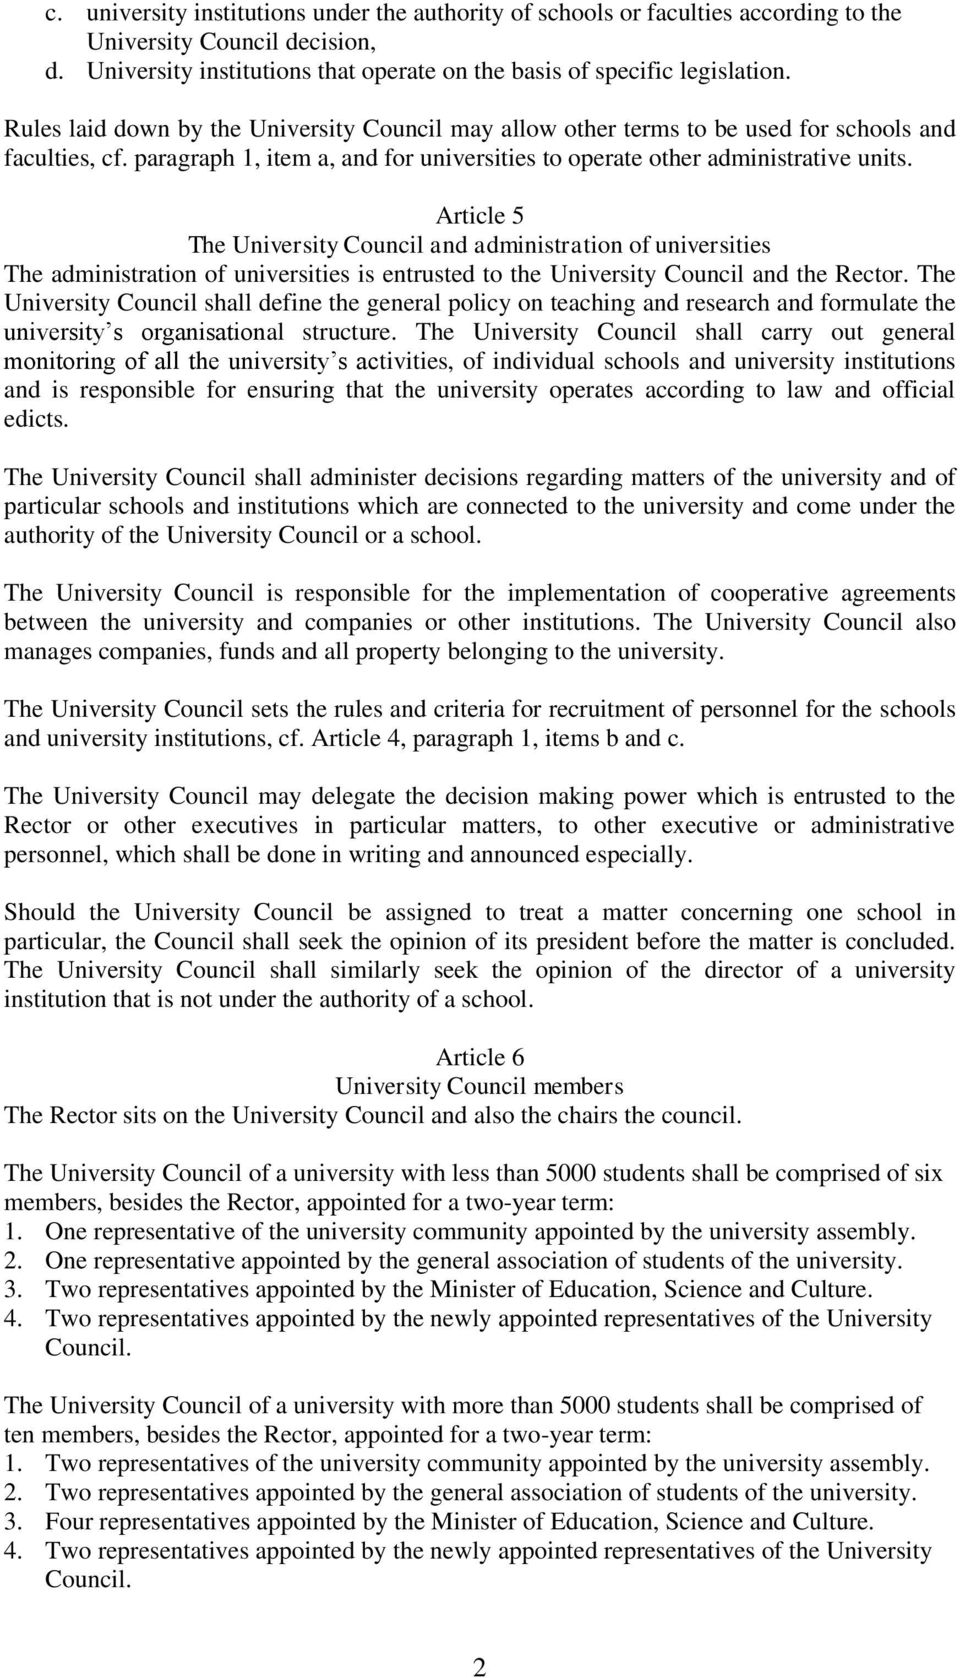 Article 5 The University Council and administration of universities The administration of universities is entrusted to the University Council and the Rector.